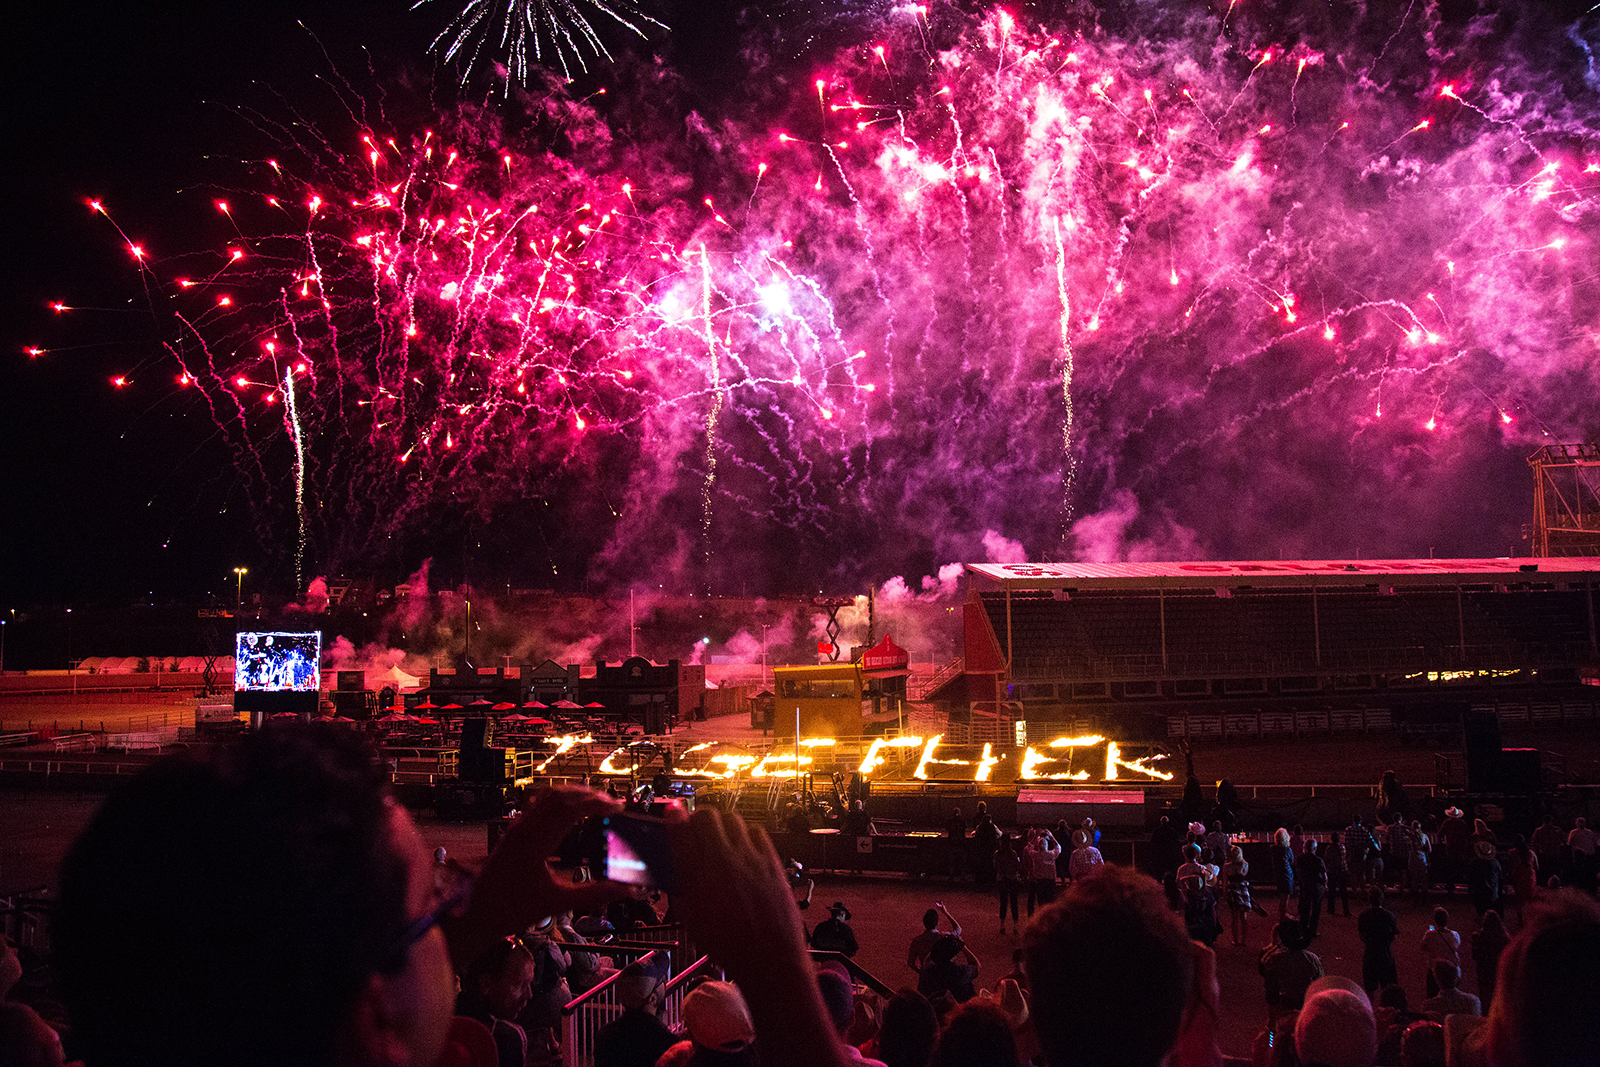 The grandstand show at the 2017 Calgary Stampede